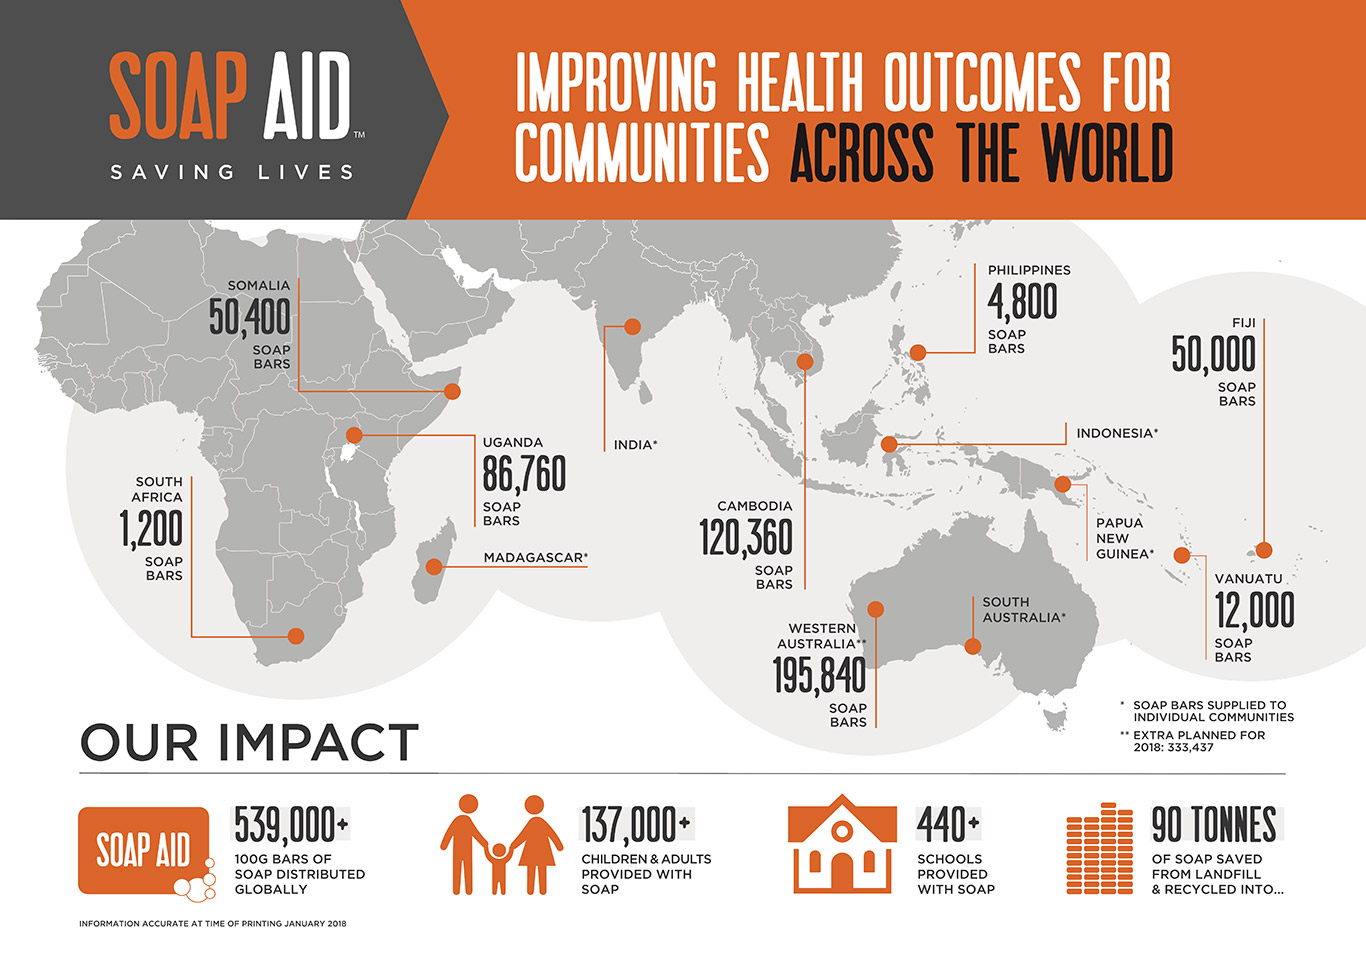 Improving health outcomes for communities across the world